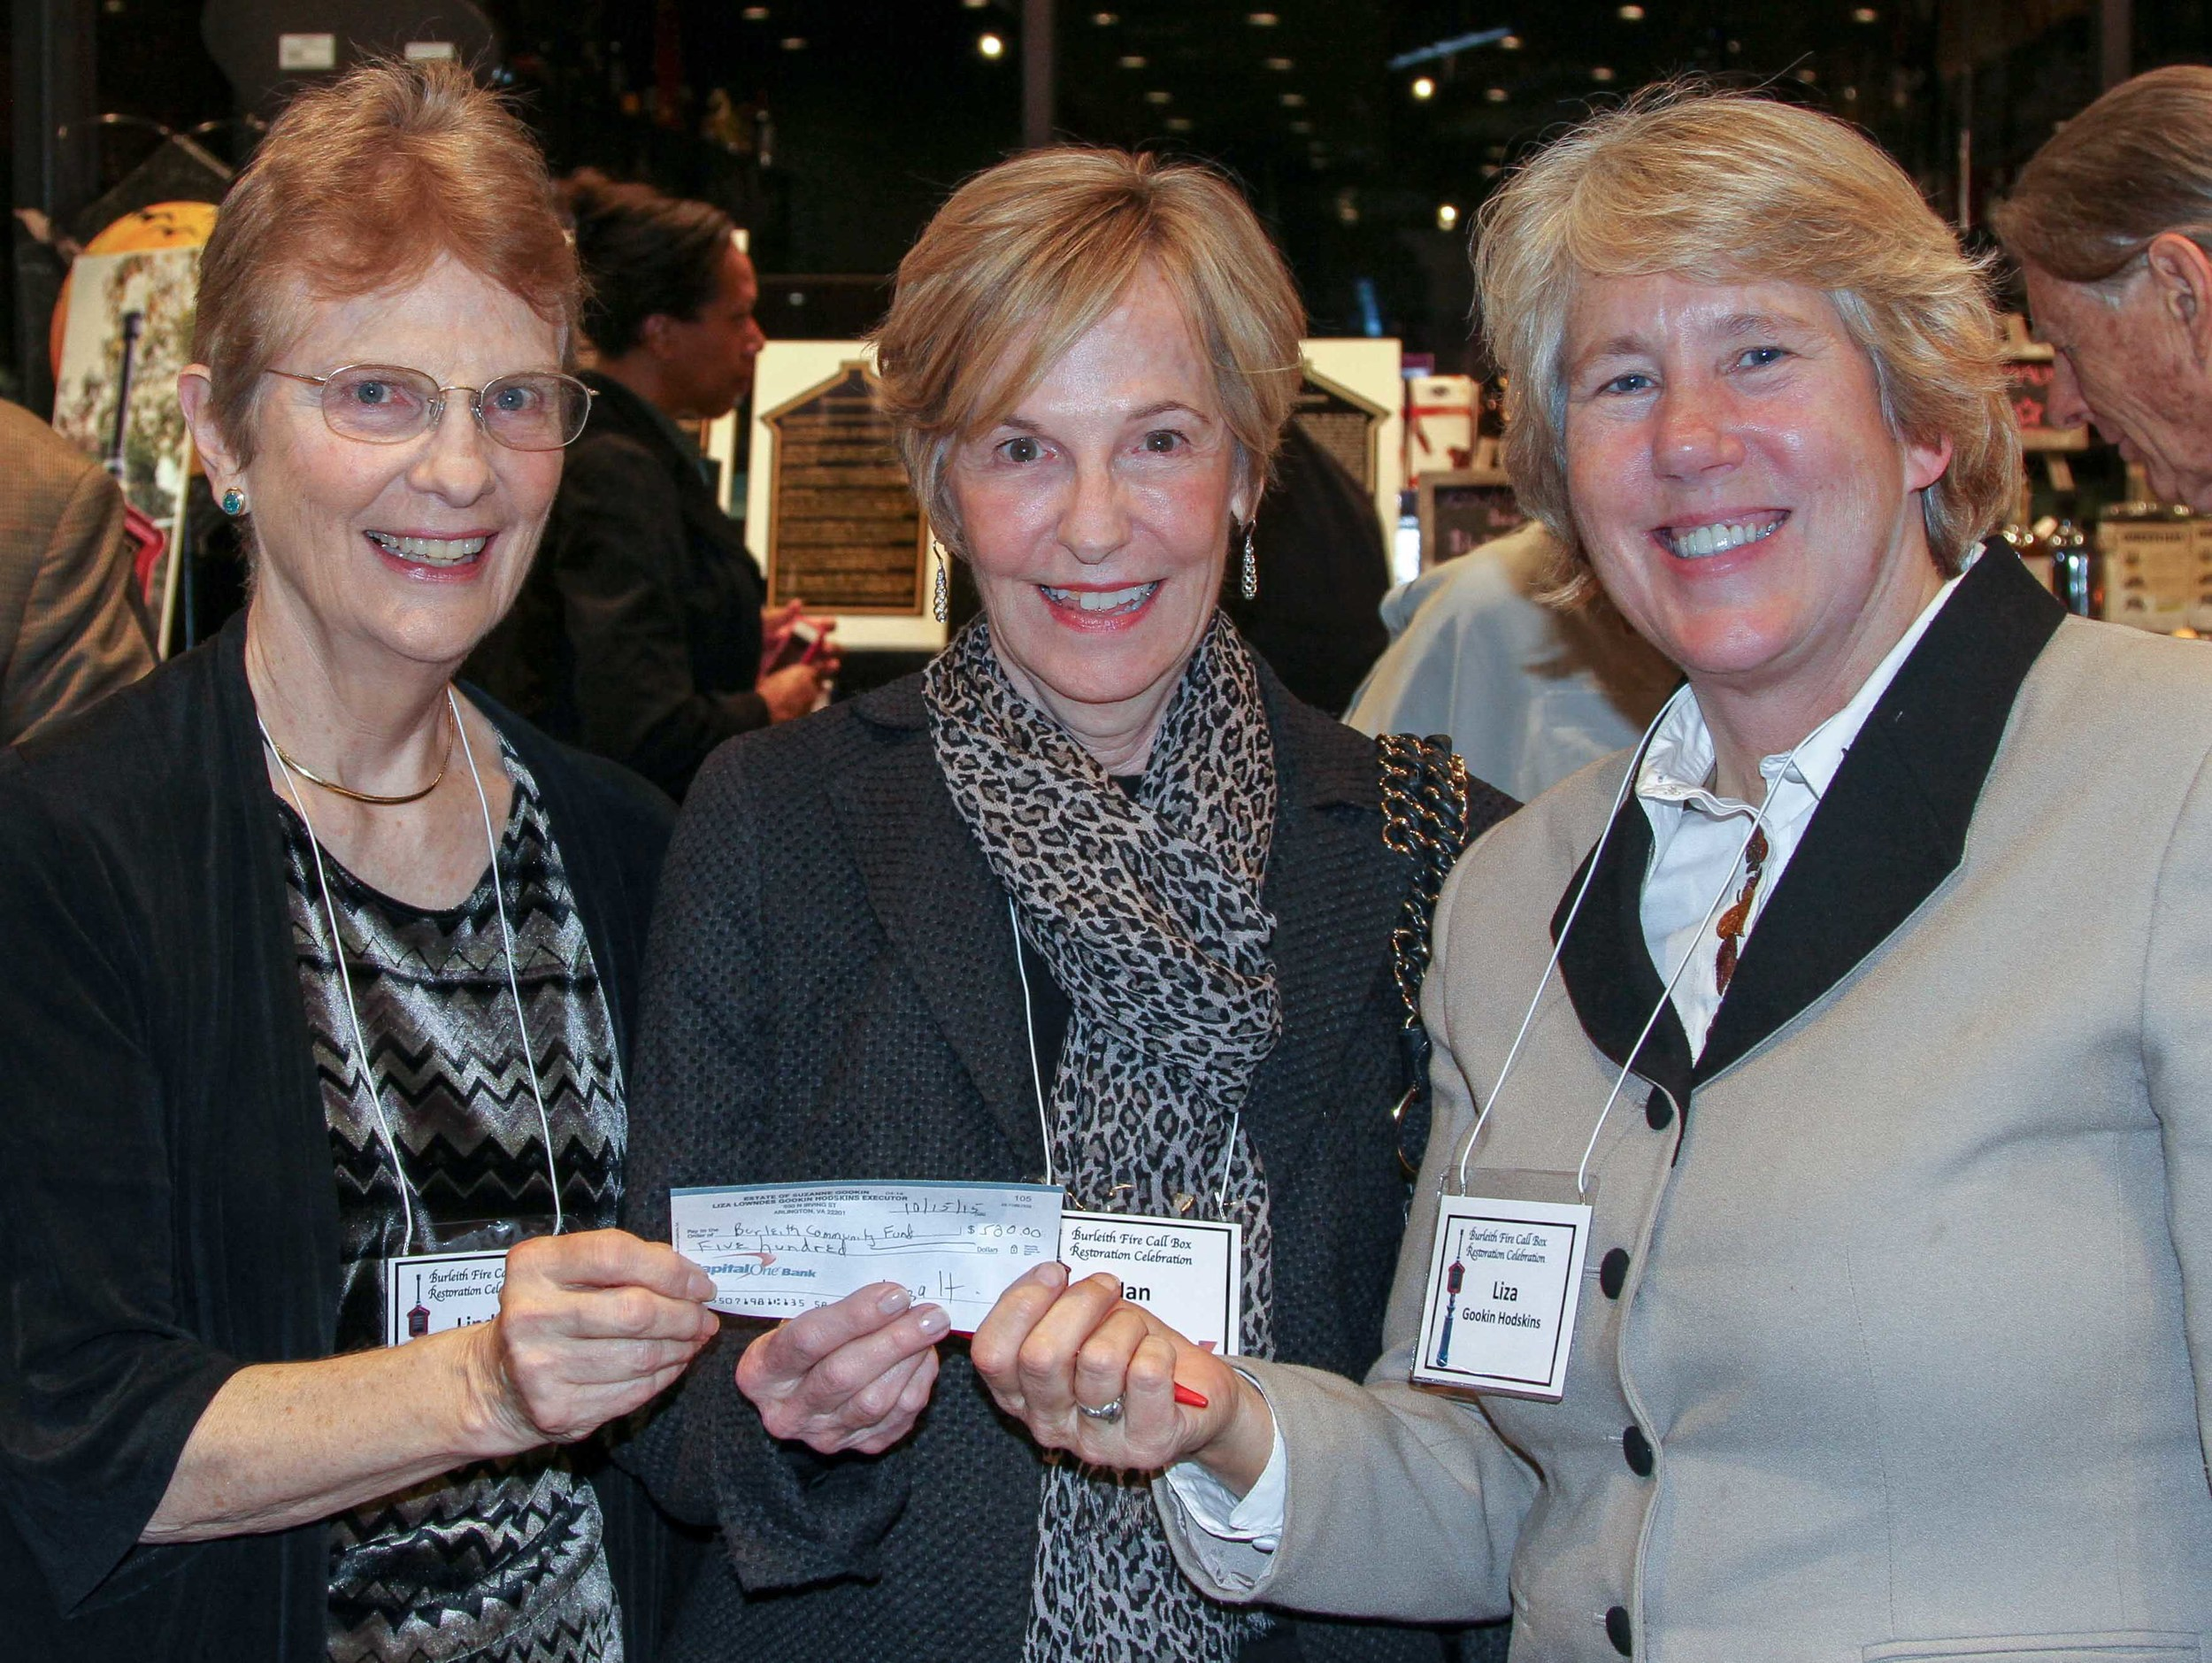 Liza gookin hodskins (right) presents the last of the needed restoration funds to Linda brooks and nan bell in honor of her parents. photo by alex frederick.